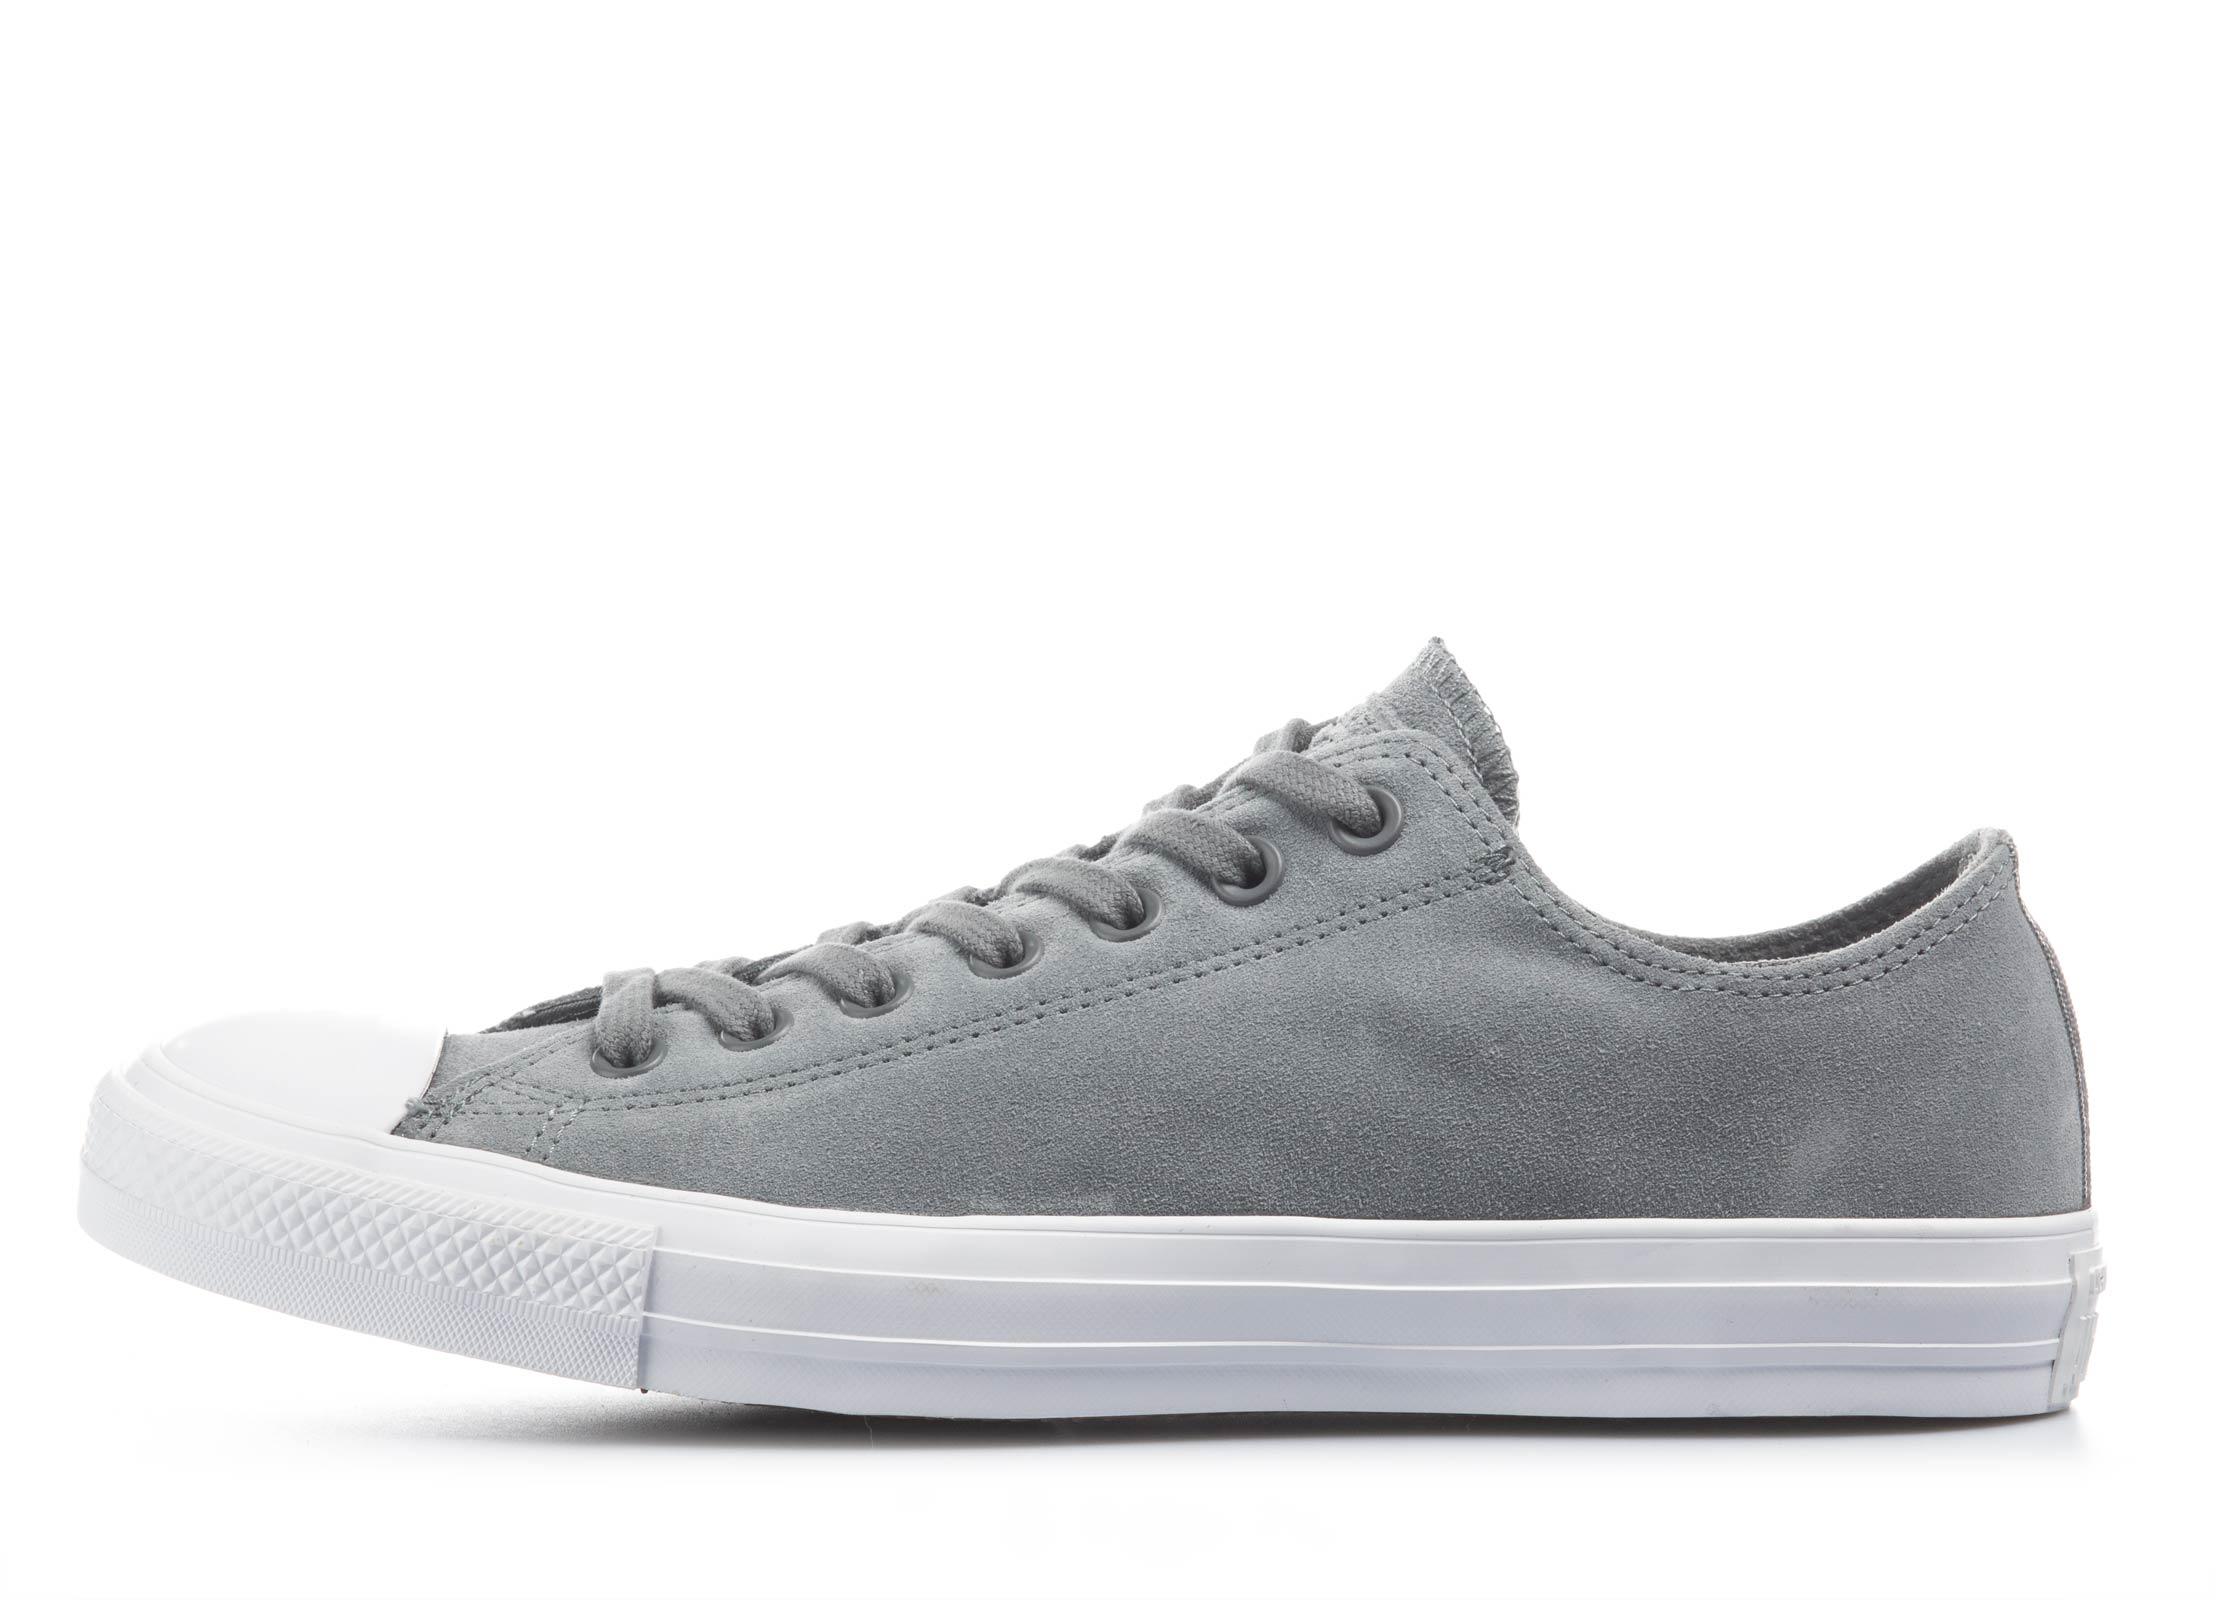 Converse Chuck Taylor All Star Plush Suede 157600C Γκρί